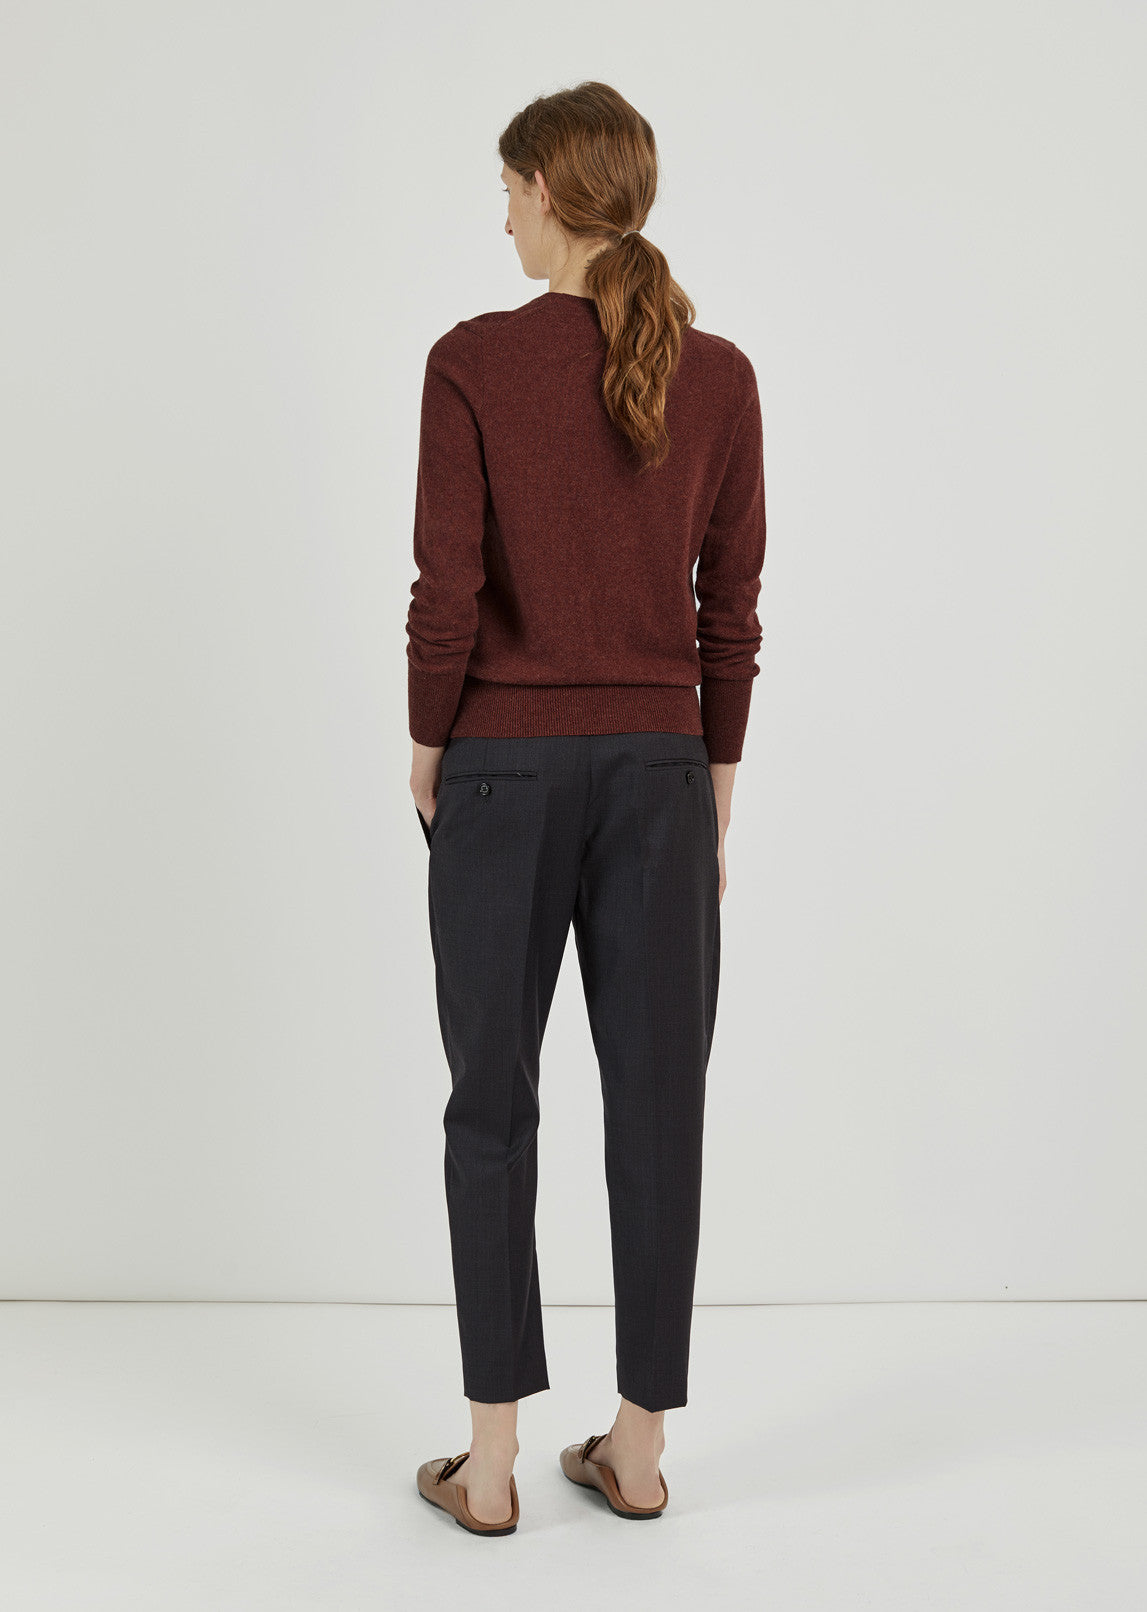 Noah Cropped Trousers